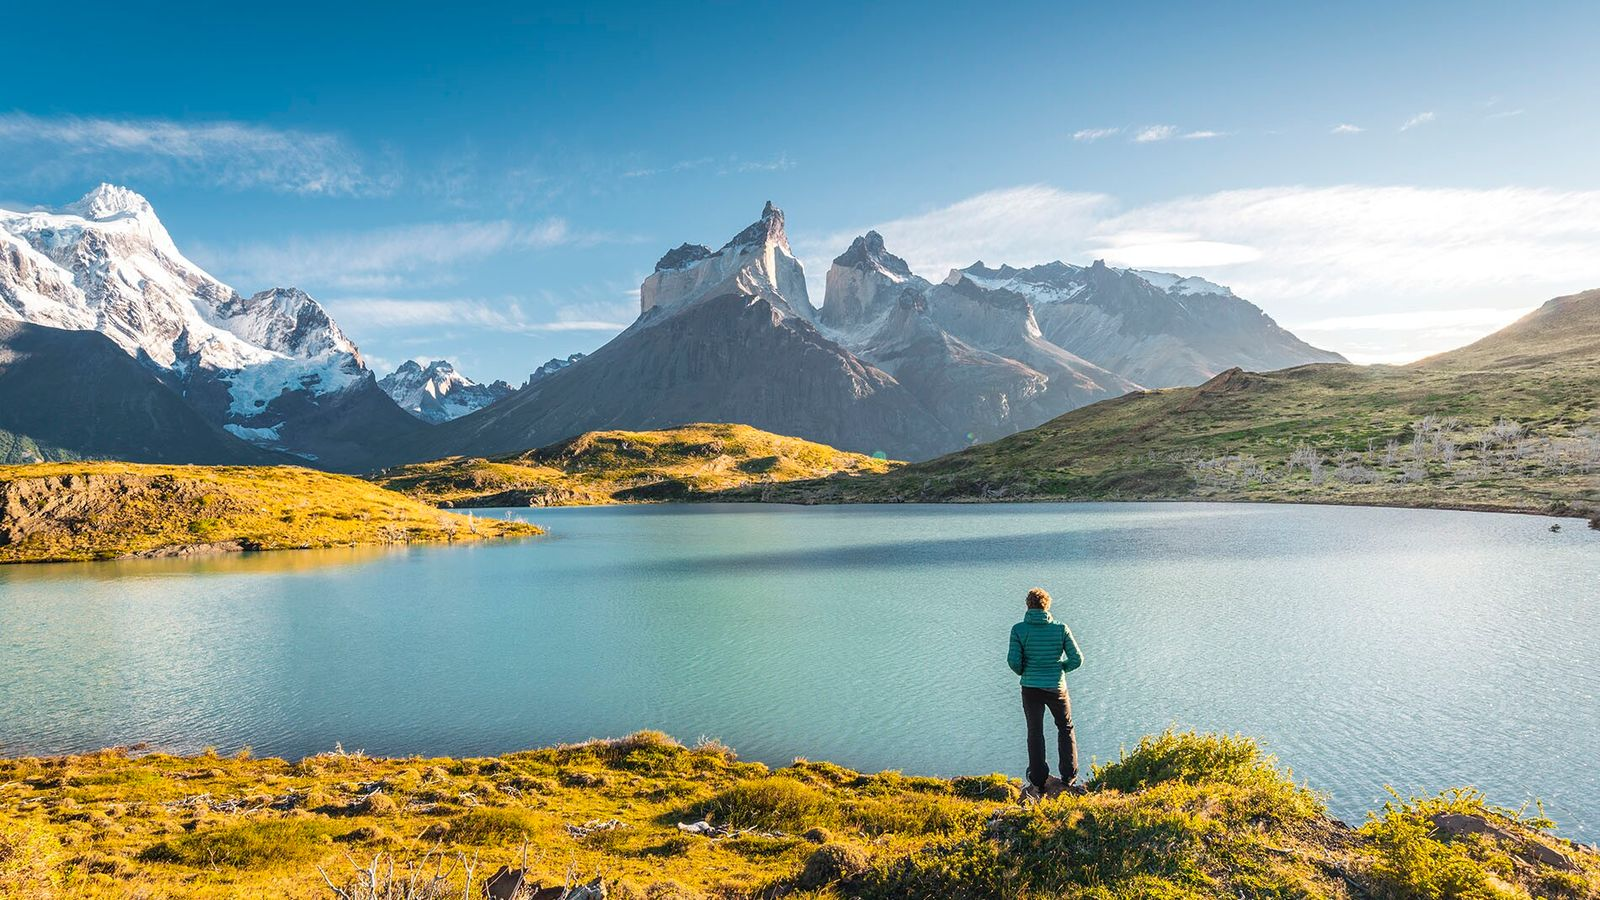 Torres del Paine National Park, in Chile's Patagonia region, is renowned for its jutting peaks, gigantic icebergs ...